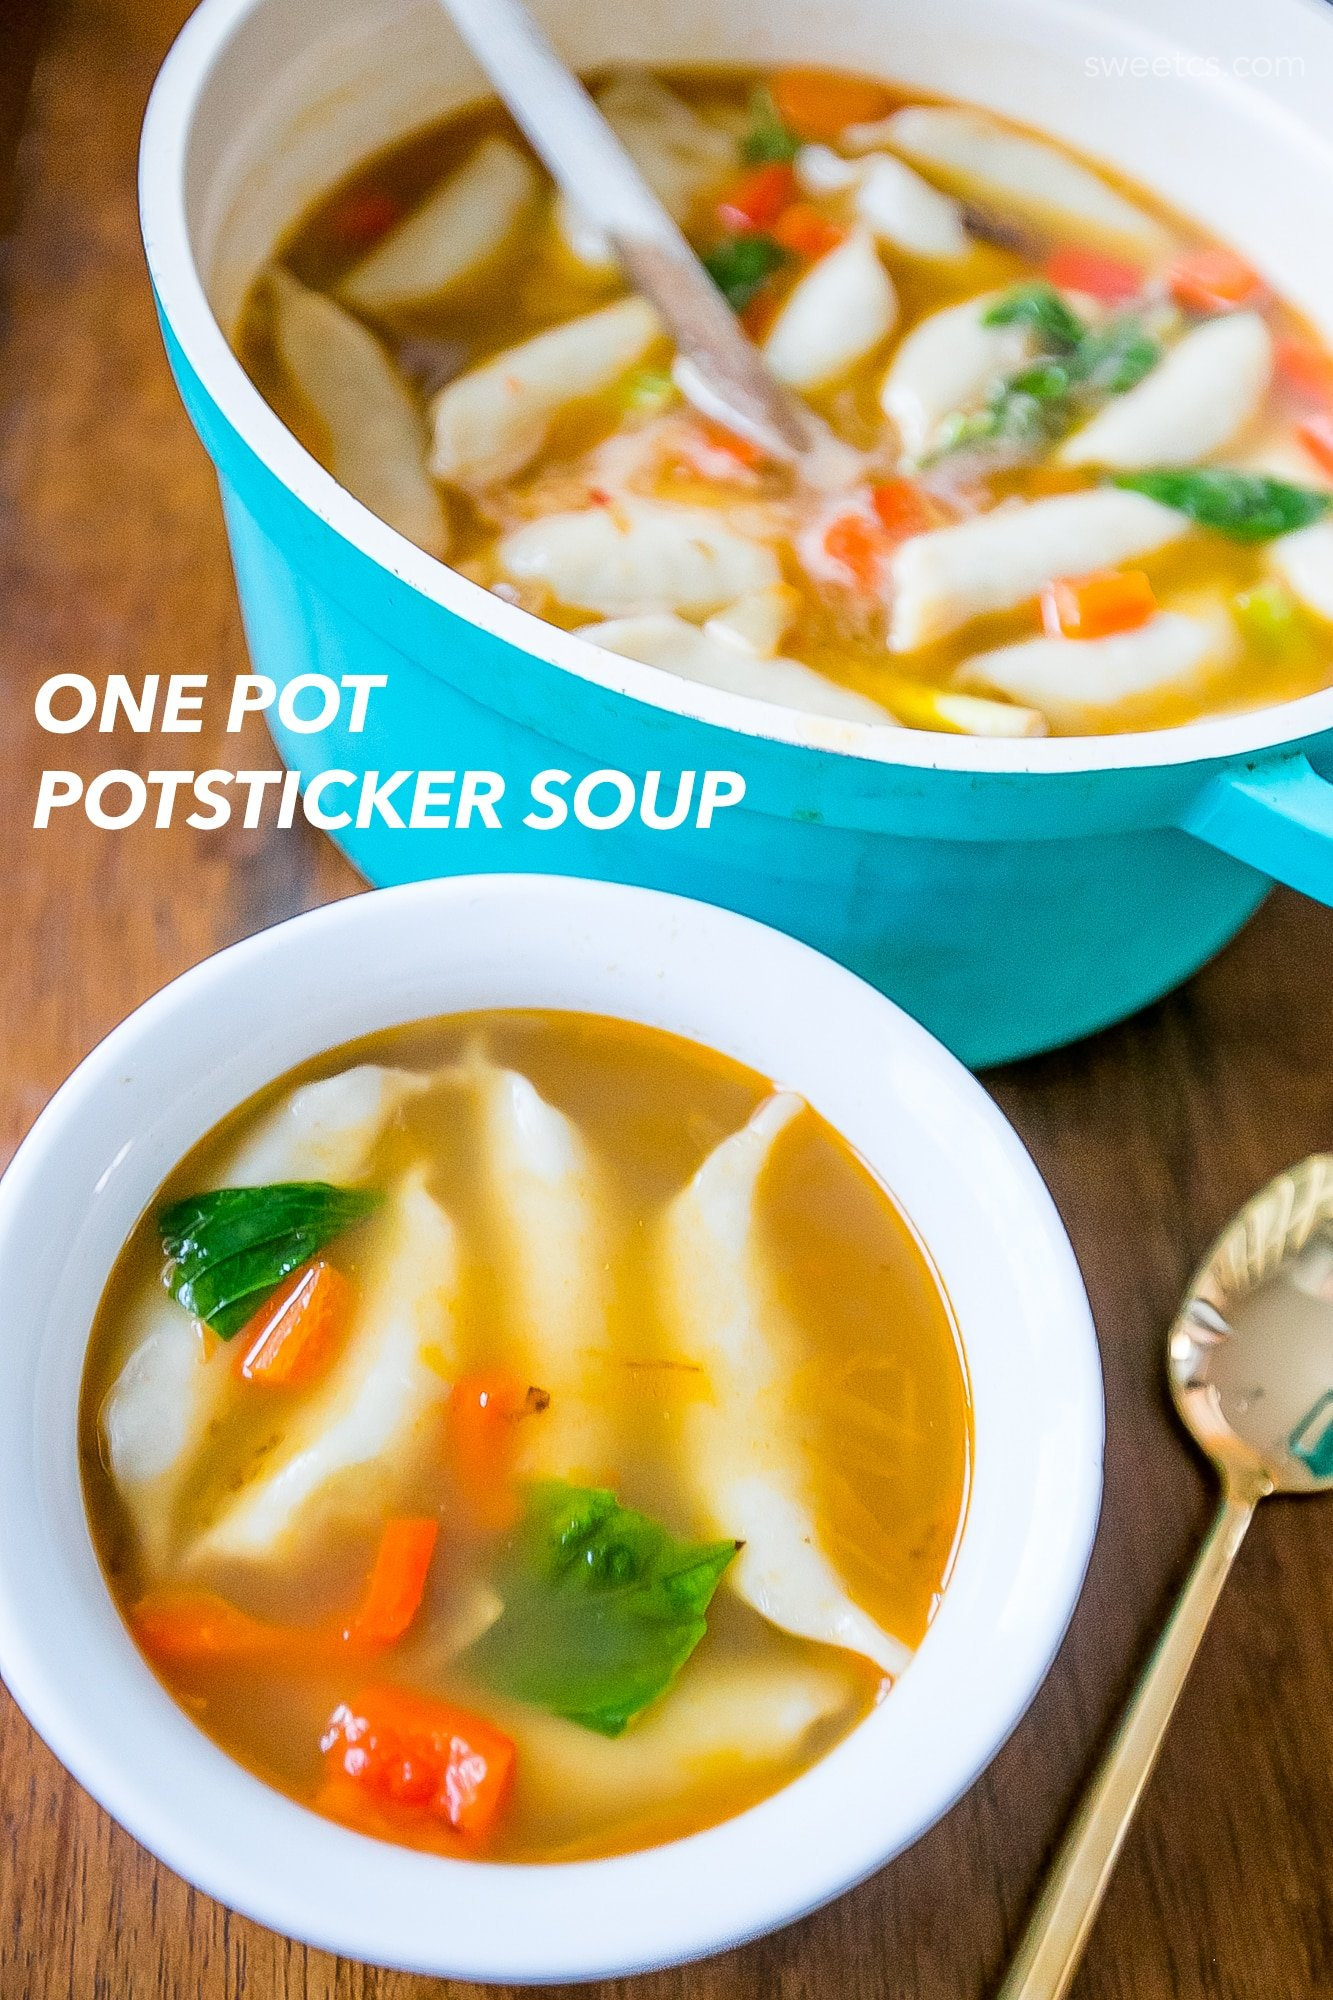 one pot dumpling soup- YUM!